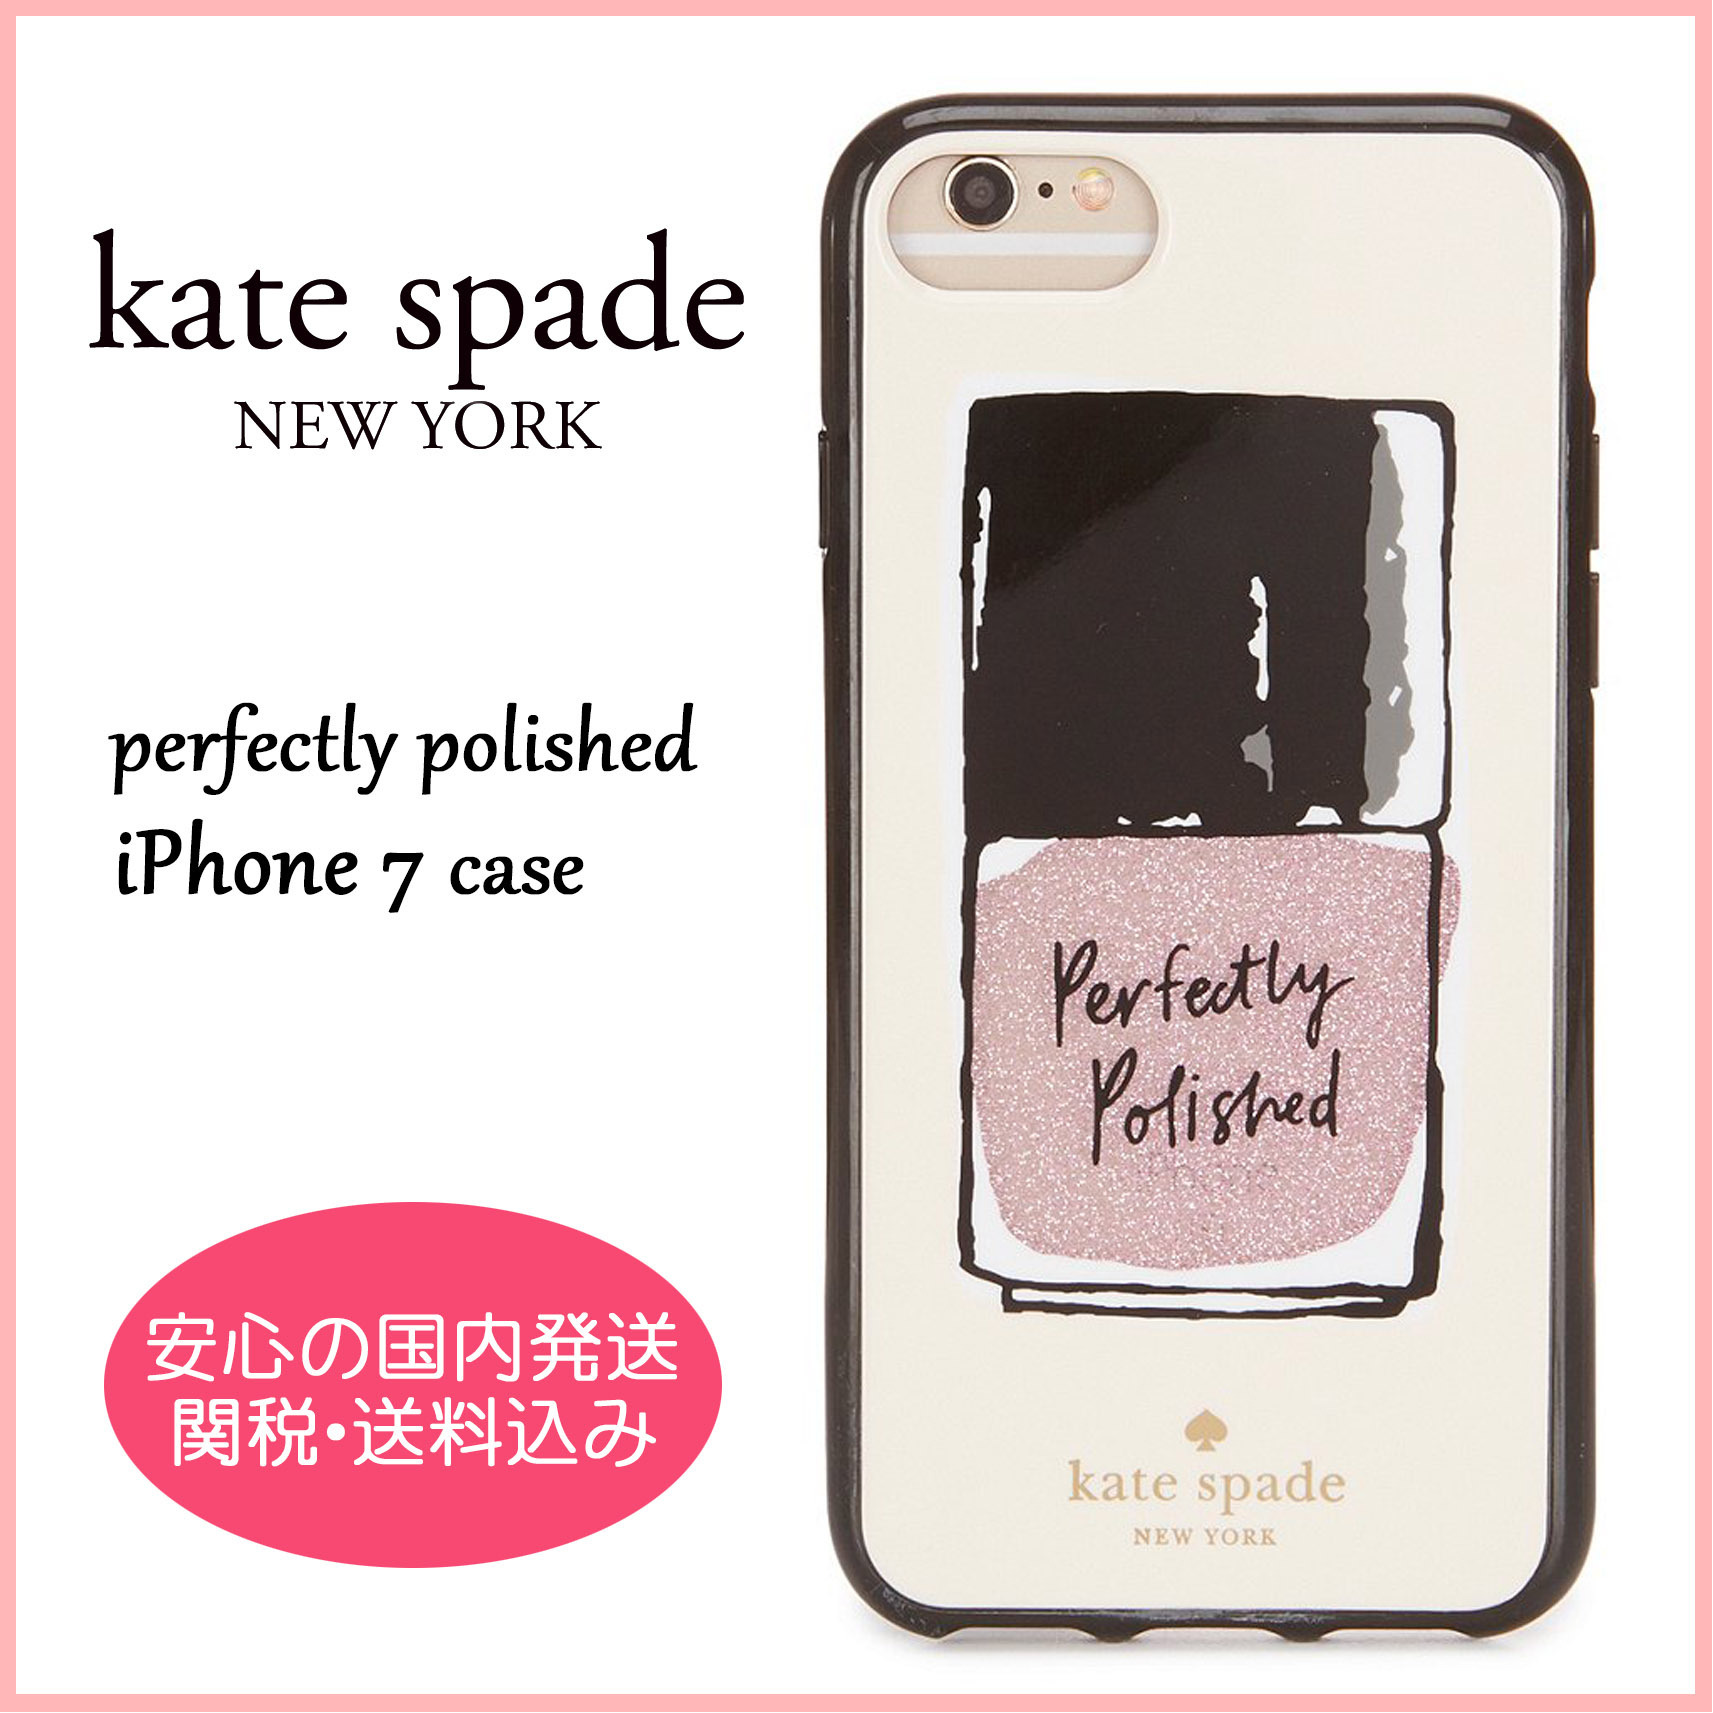 【国内完売】 PERFECTLY POLISHED IPHONE 7 CASE セール